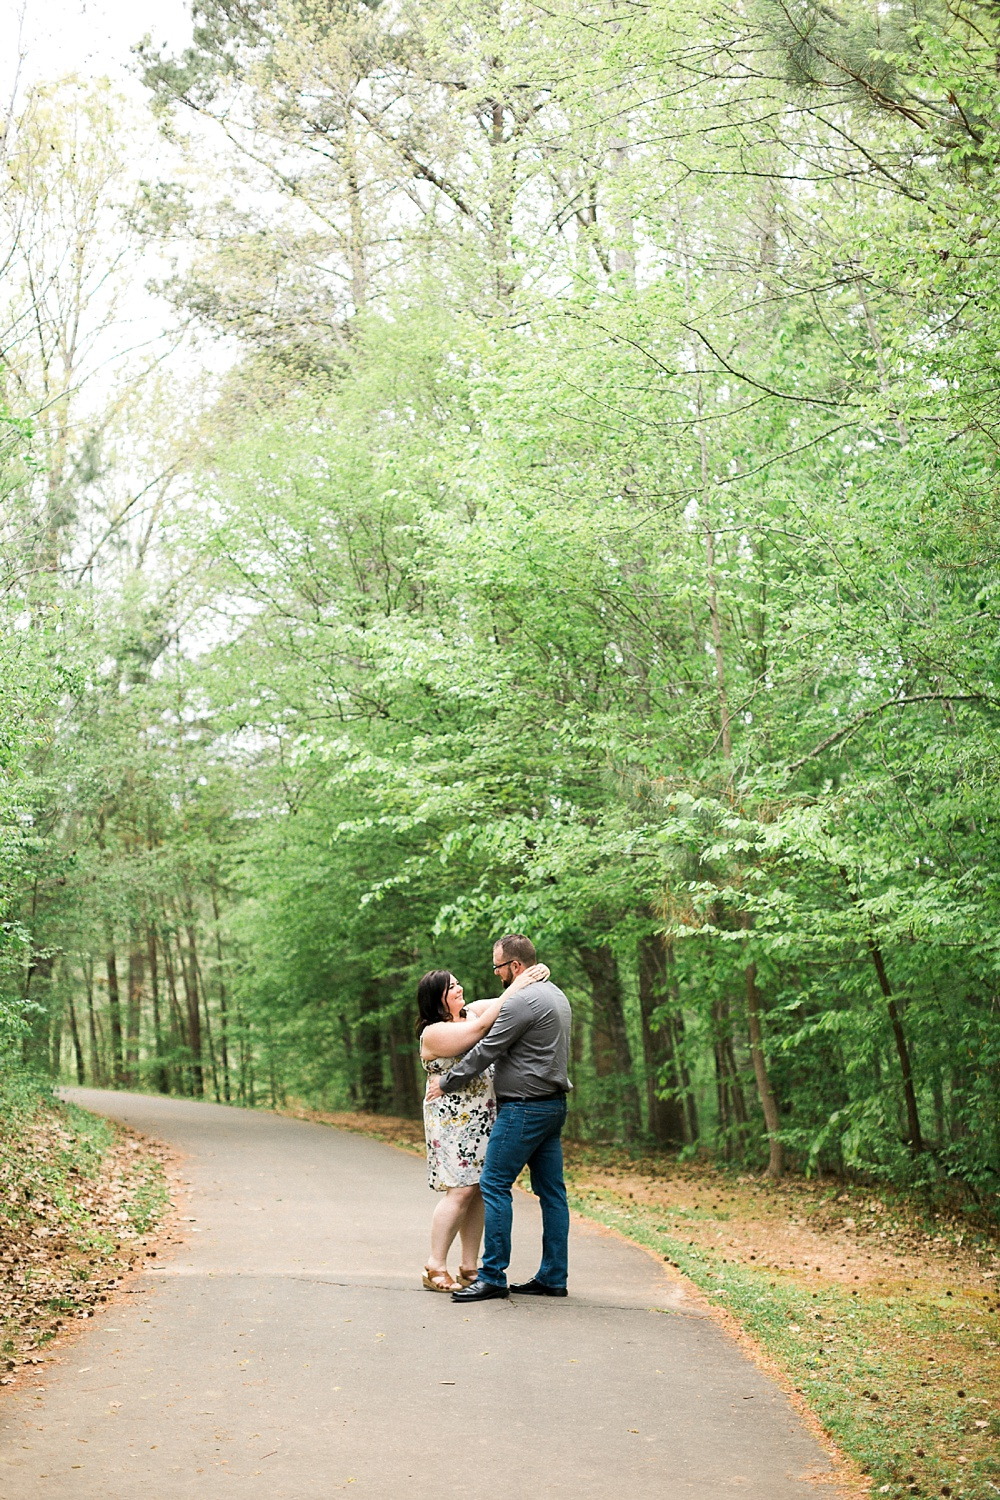 engagement session at carroll joyner park wake forest, nc